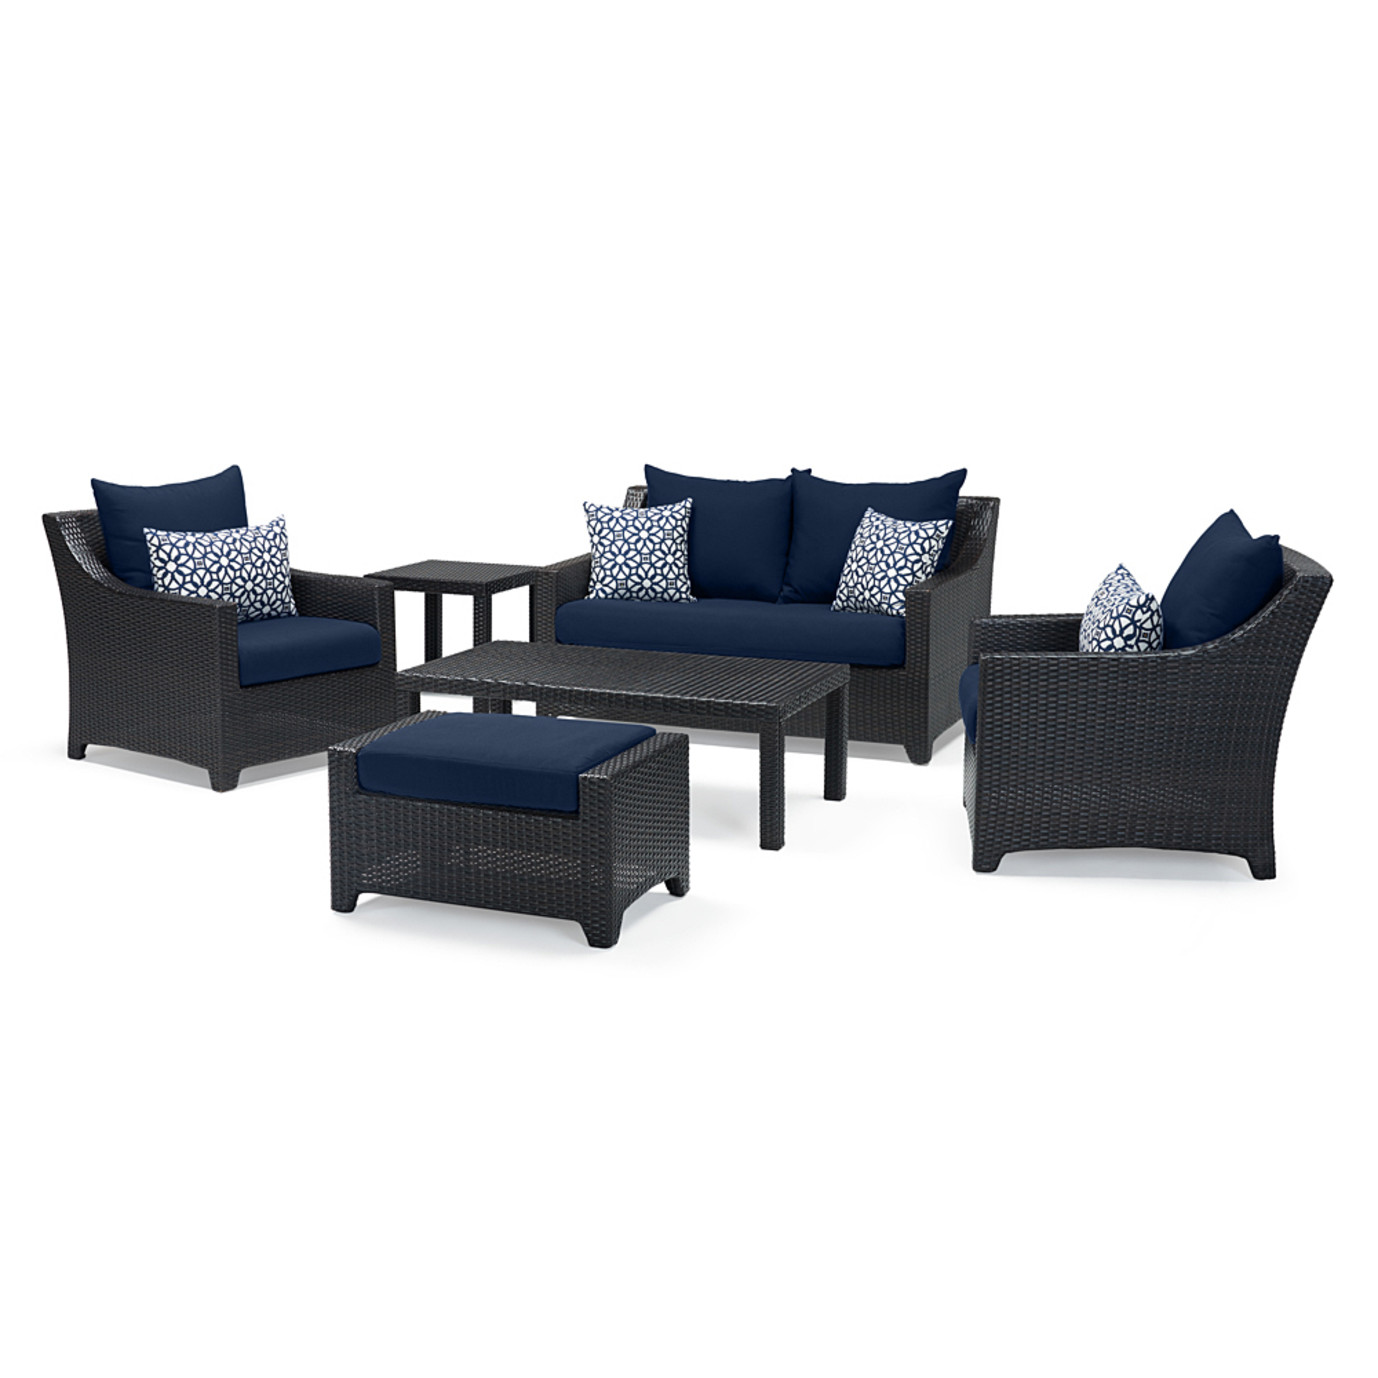 Deco™ 6 Piece Love and Club Seating Set